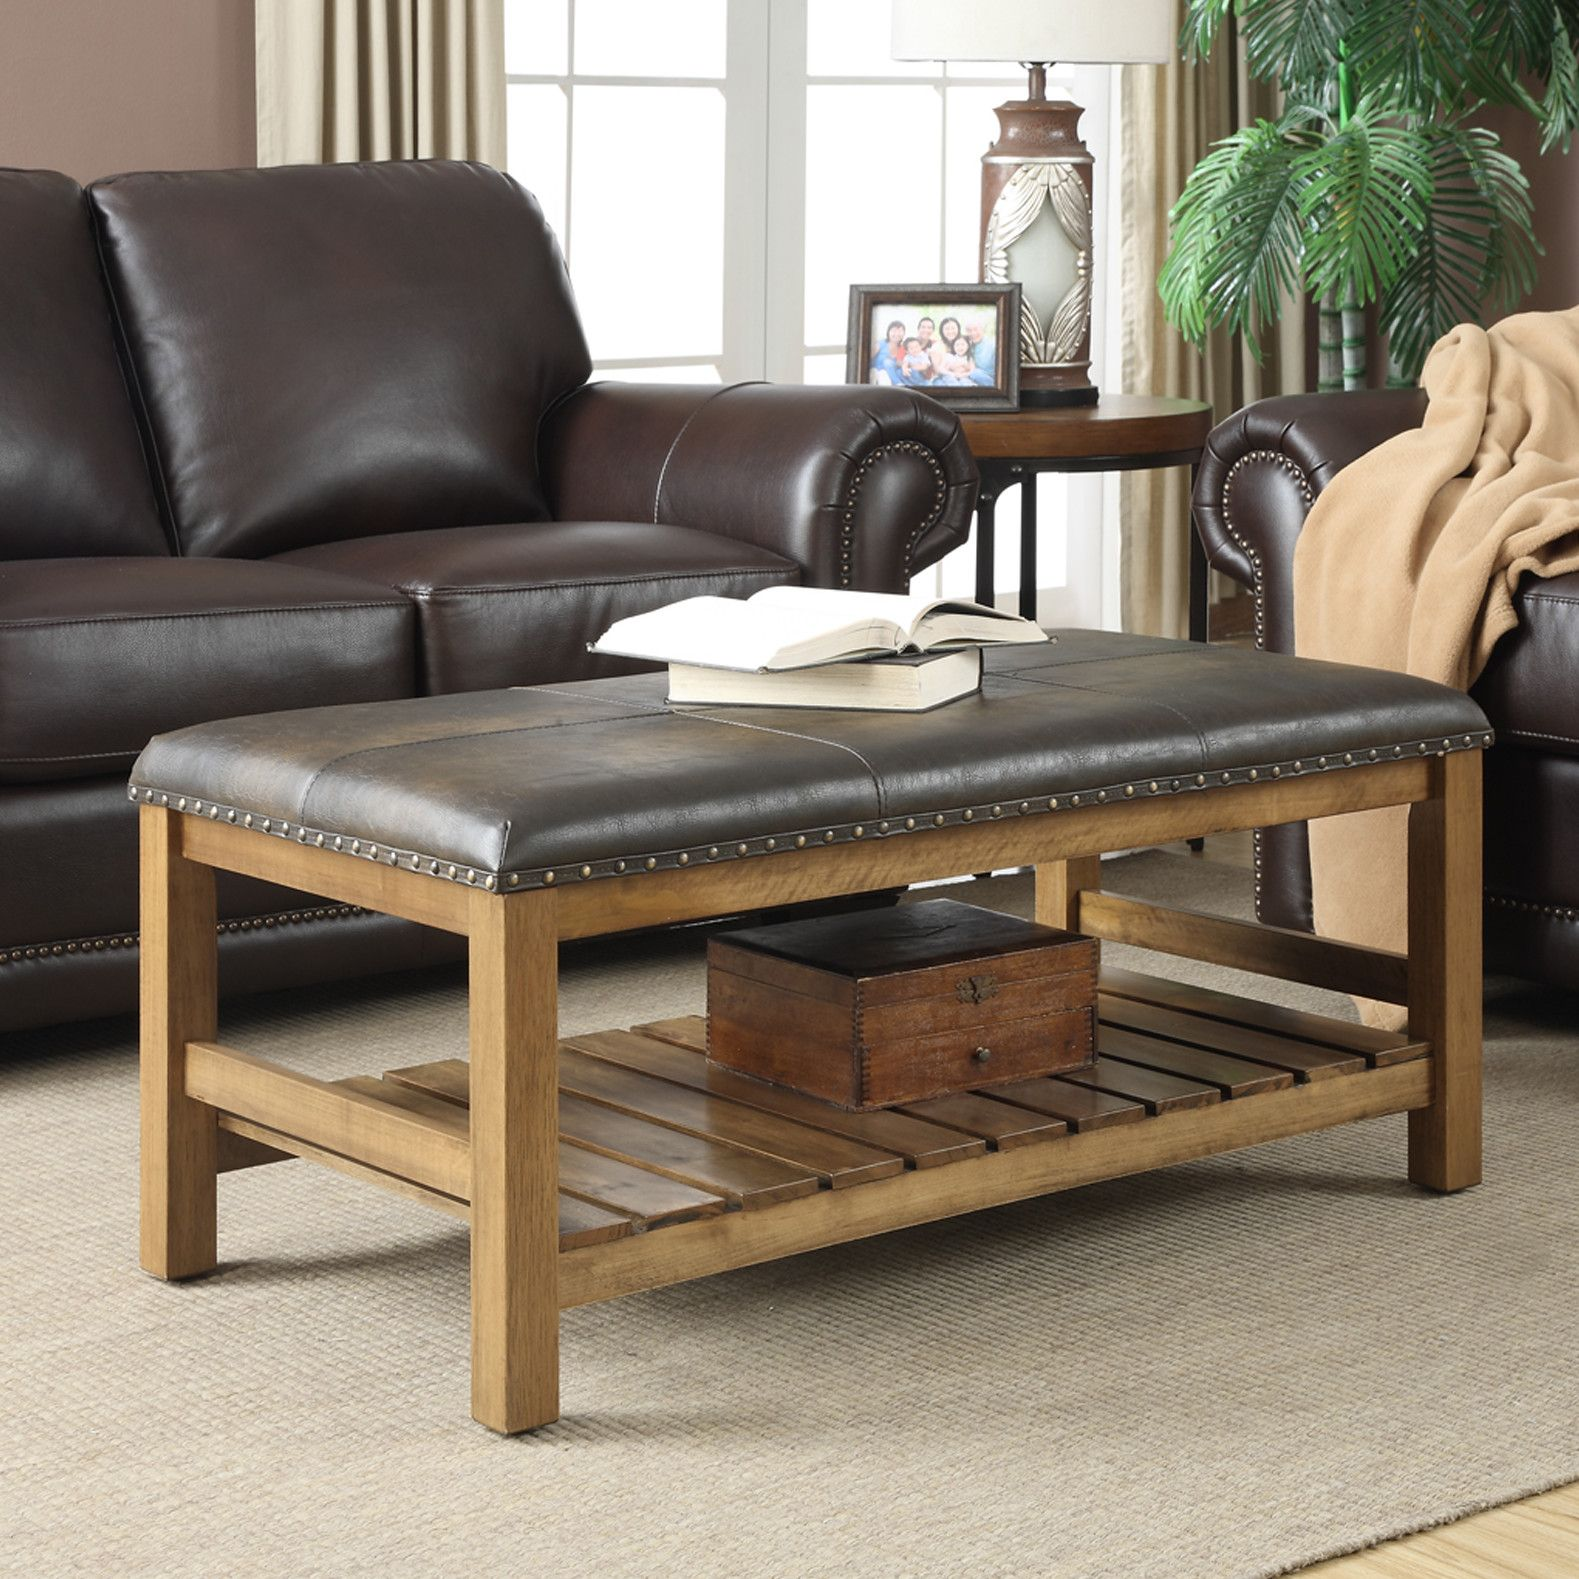 Pleasant Loon Peak Perkins Ottoman Our House Ottoman Bench Pabps2019 Chair Design Images Pabps2019Com